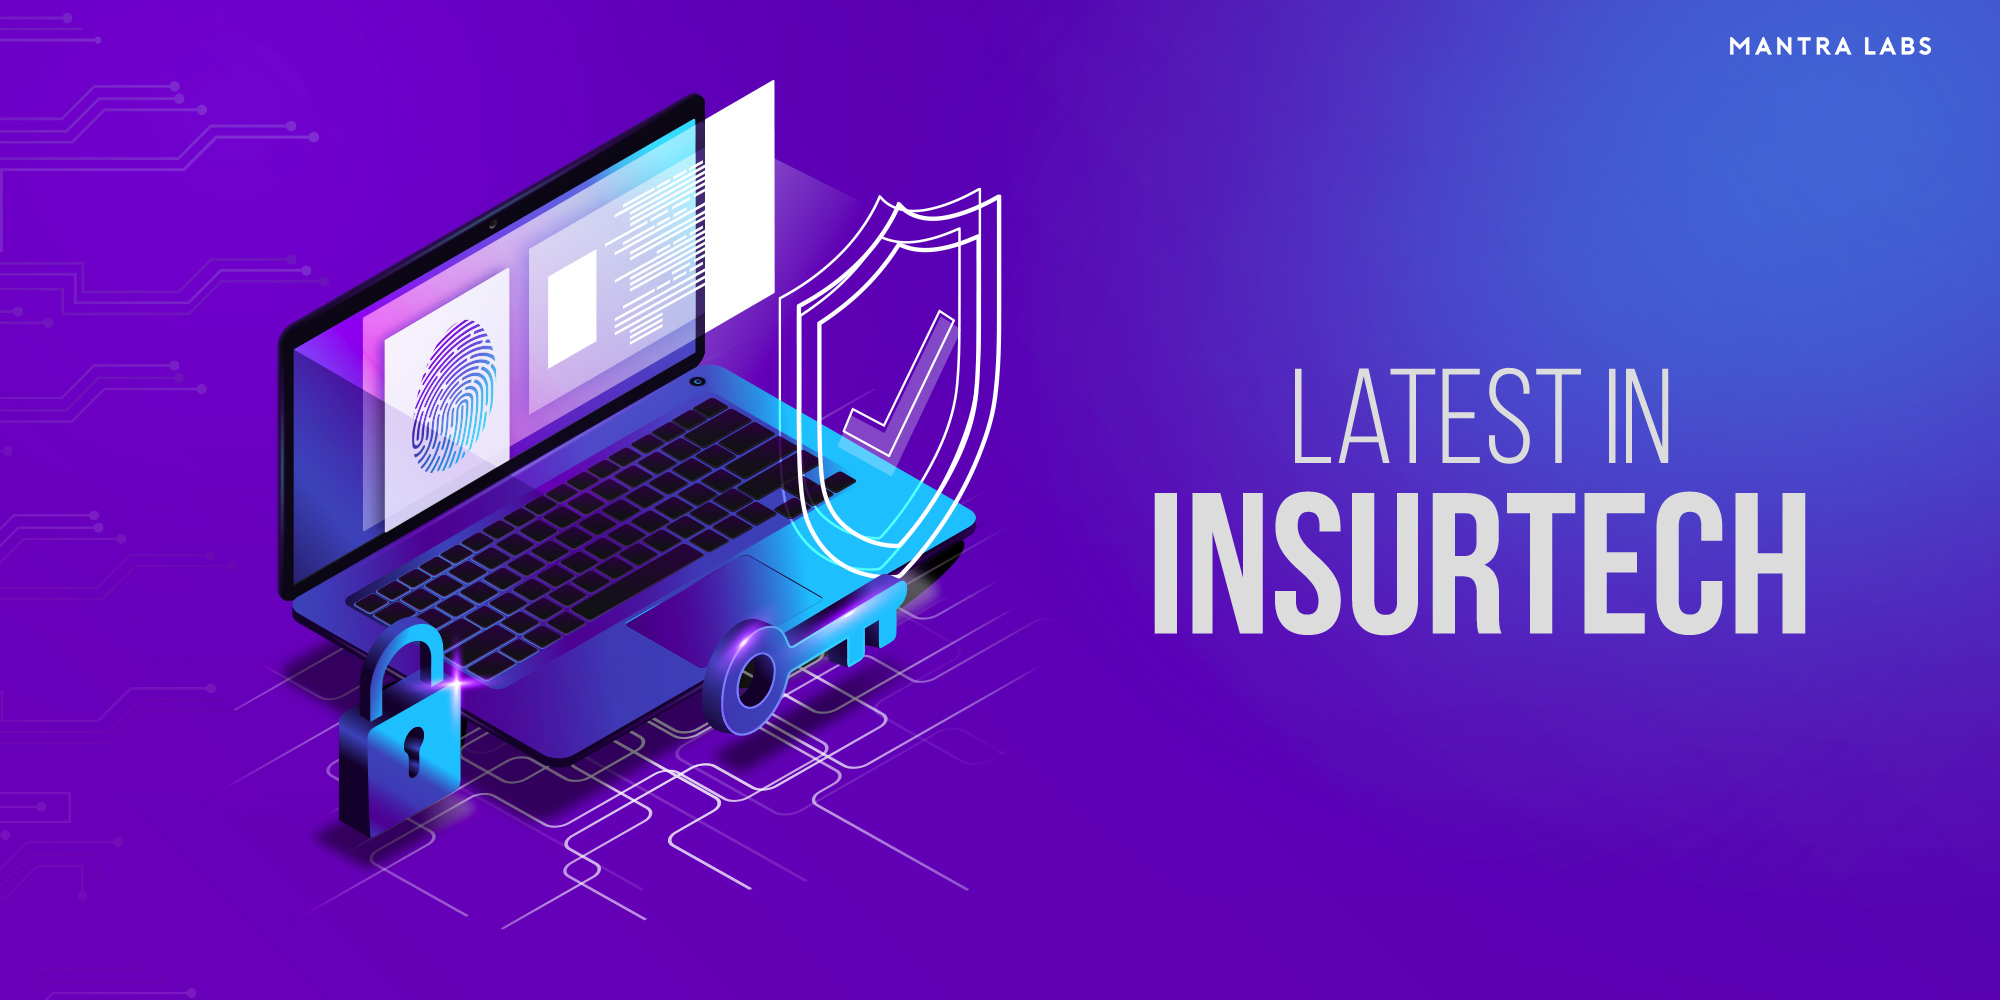 What is latest in Insurtech?